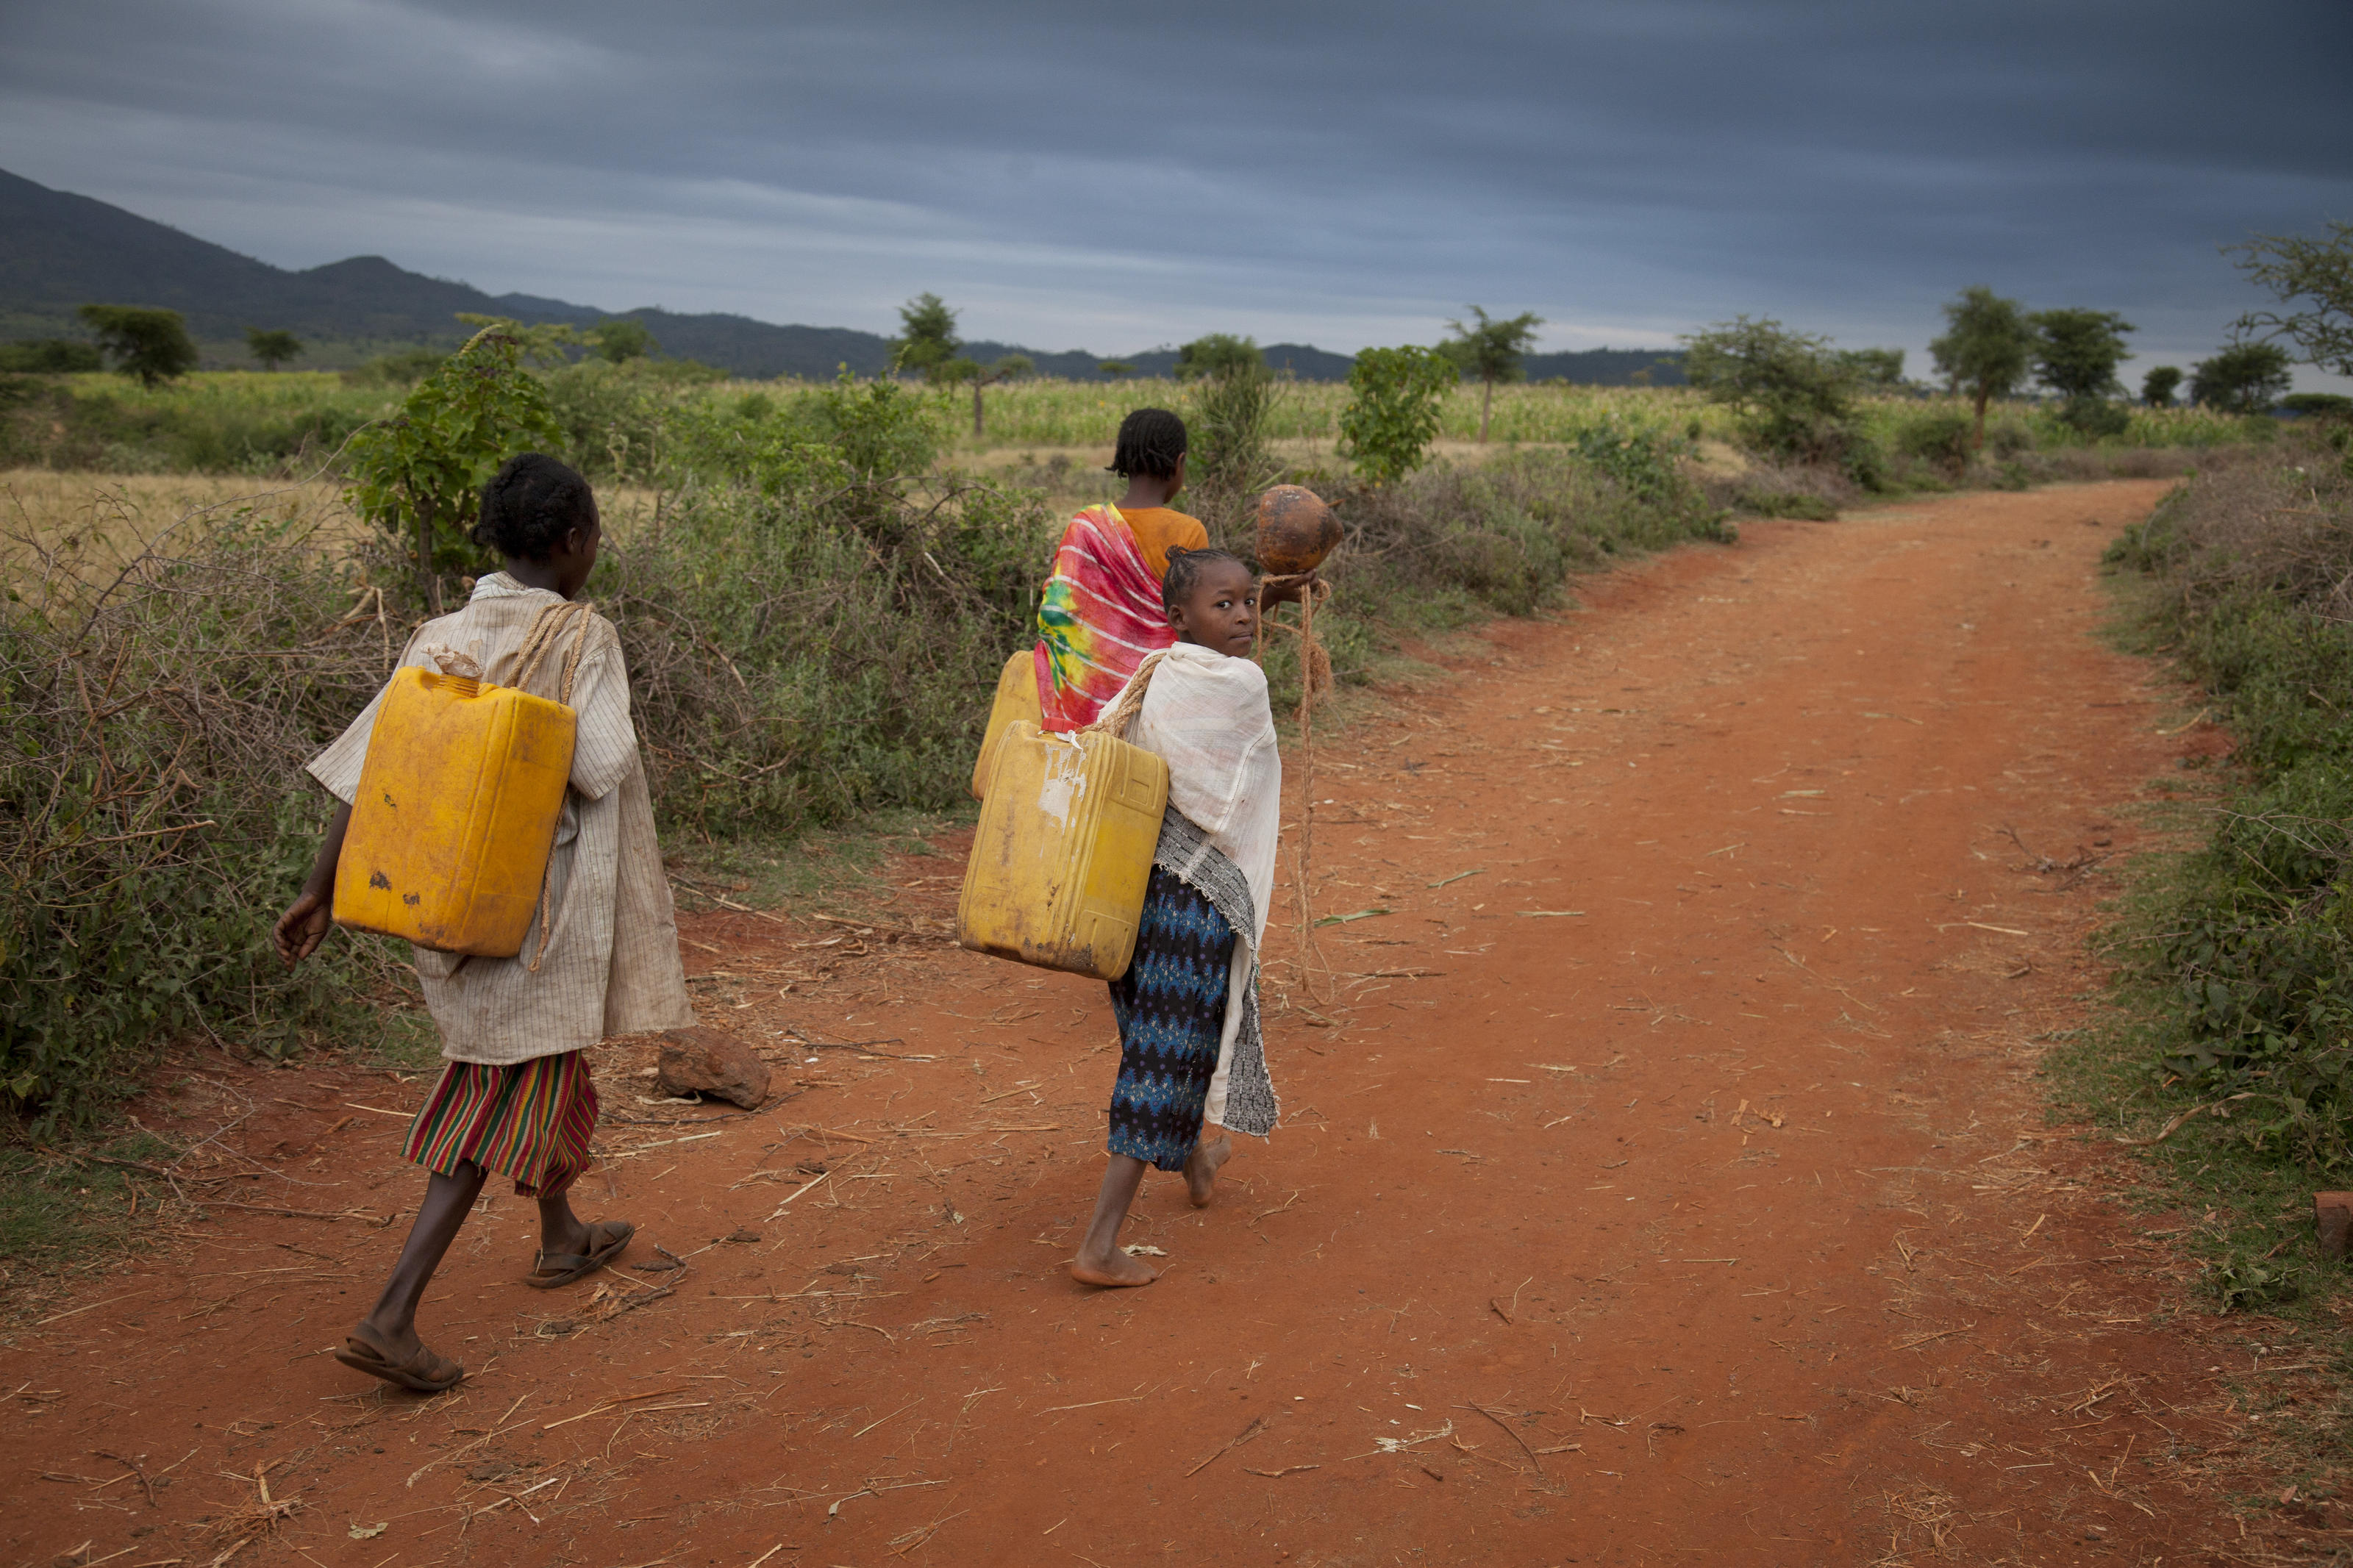 Kawesa Kalabo, around 13, (red skirt, green top, yellow/brown shawl), Meshewat (orange top, noen shawl), Meselech Basaye (red/white top and blue skirt / white shawl on some photos), Ebolaya Kambiro (white shirt/stripy skirt), collecting dirty water in the morning at Orbale river, a good half hours walk away, Lahyte, Konso, Ethiopia, 2012.